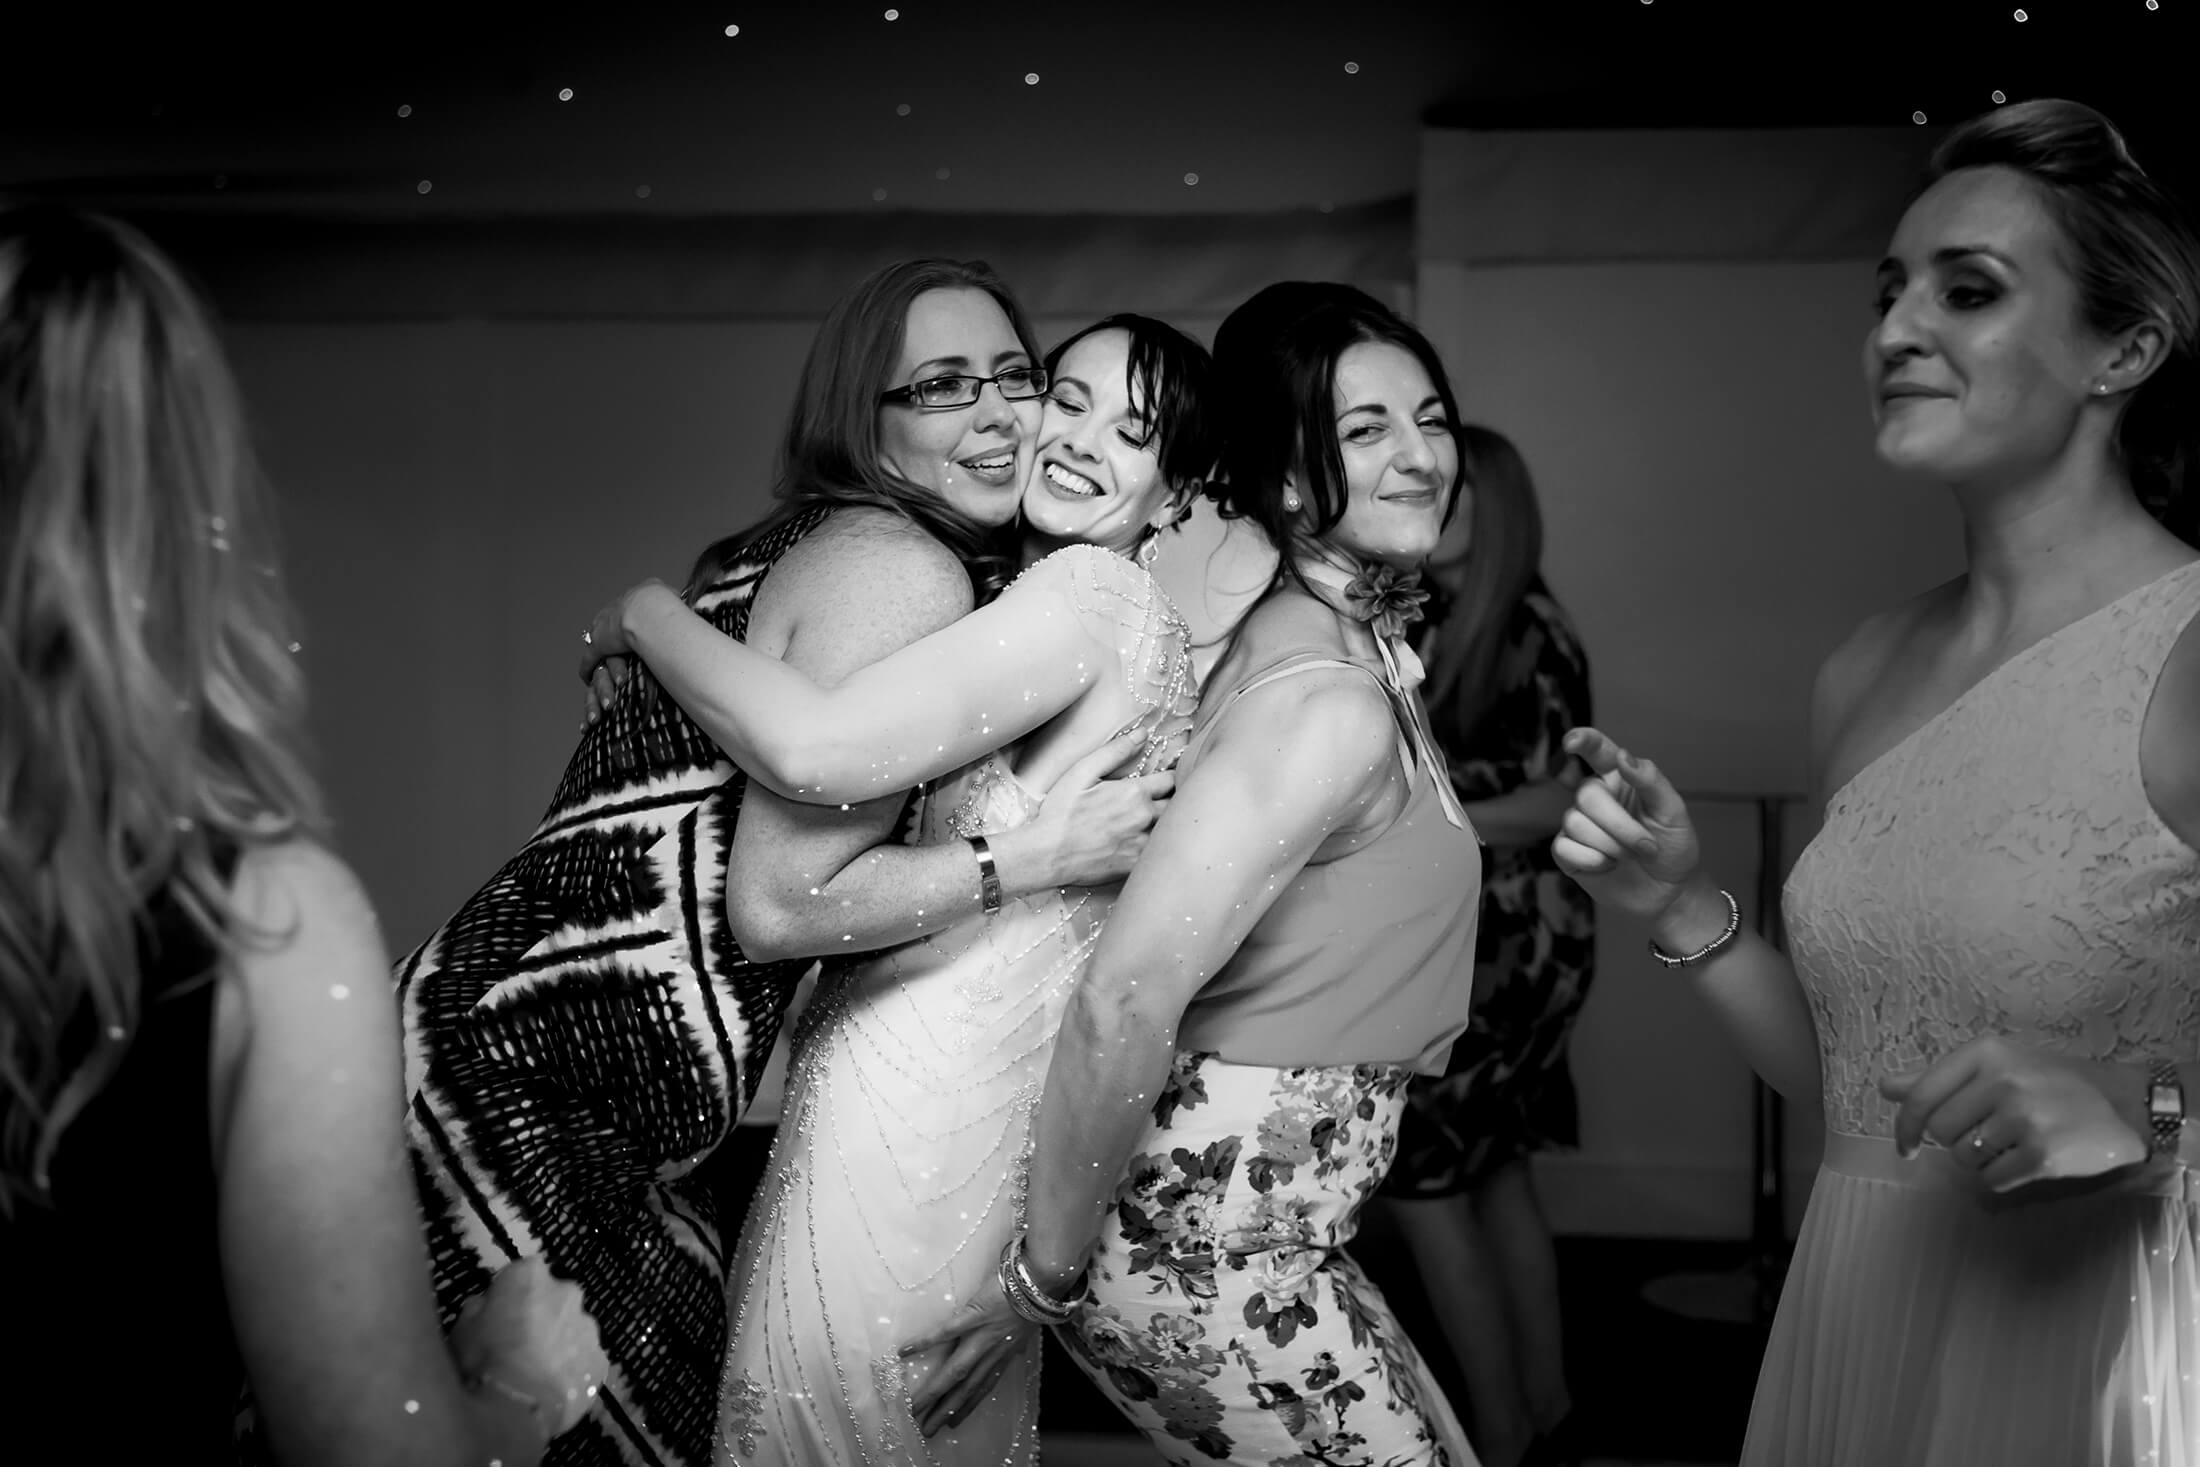 The bride dances with friends following her first dance at Combermere Abbey - Combermere Abbey Wedding Photographer